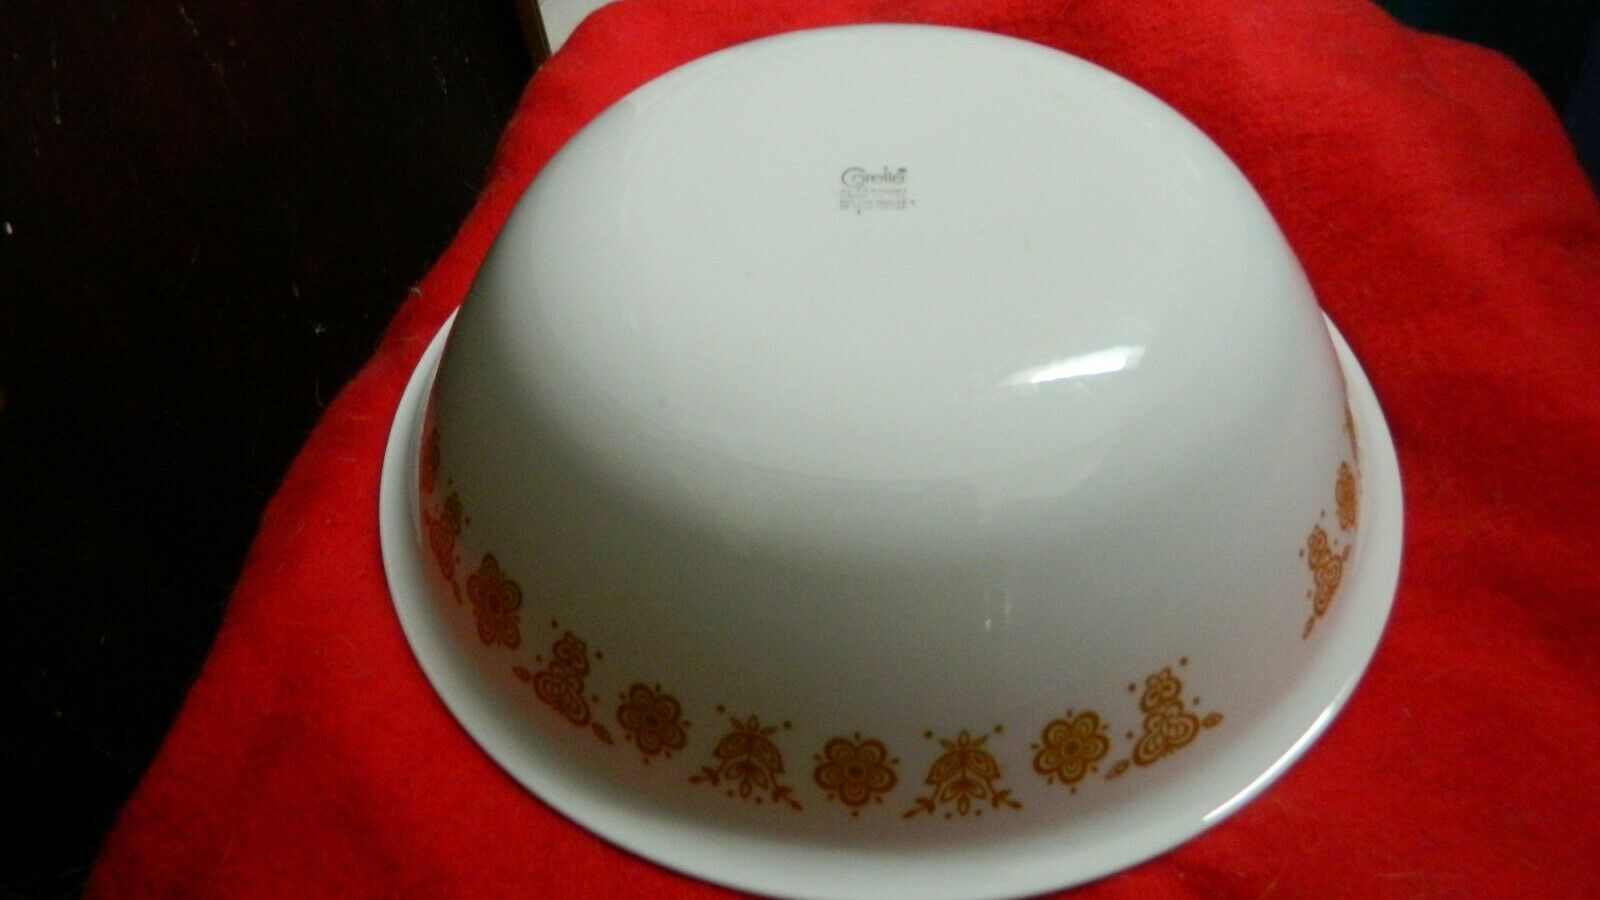 Primary image for CORELLE BUTTERFLY GOLD 2 QUART SERVING BOWL 10&1/4 INCH FREE USA SHIP